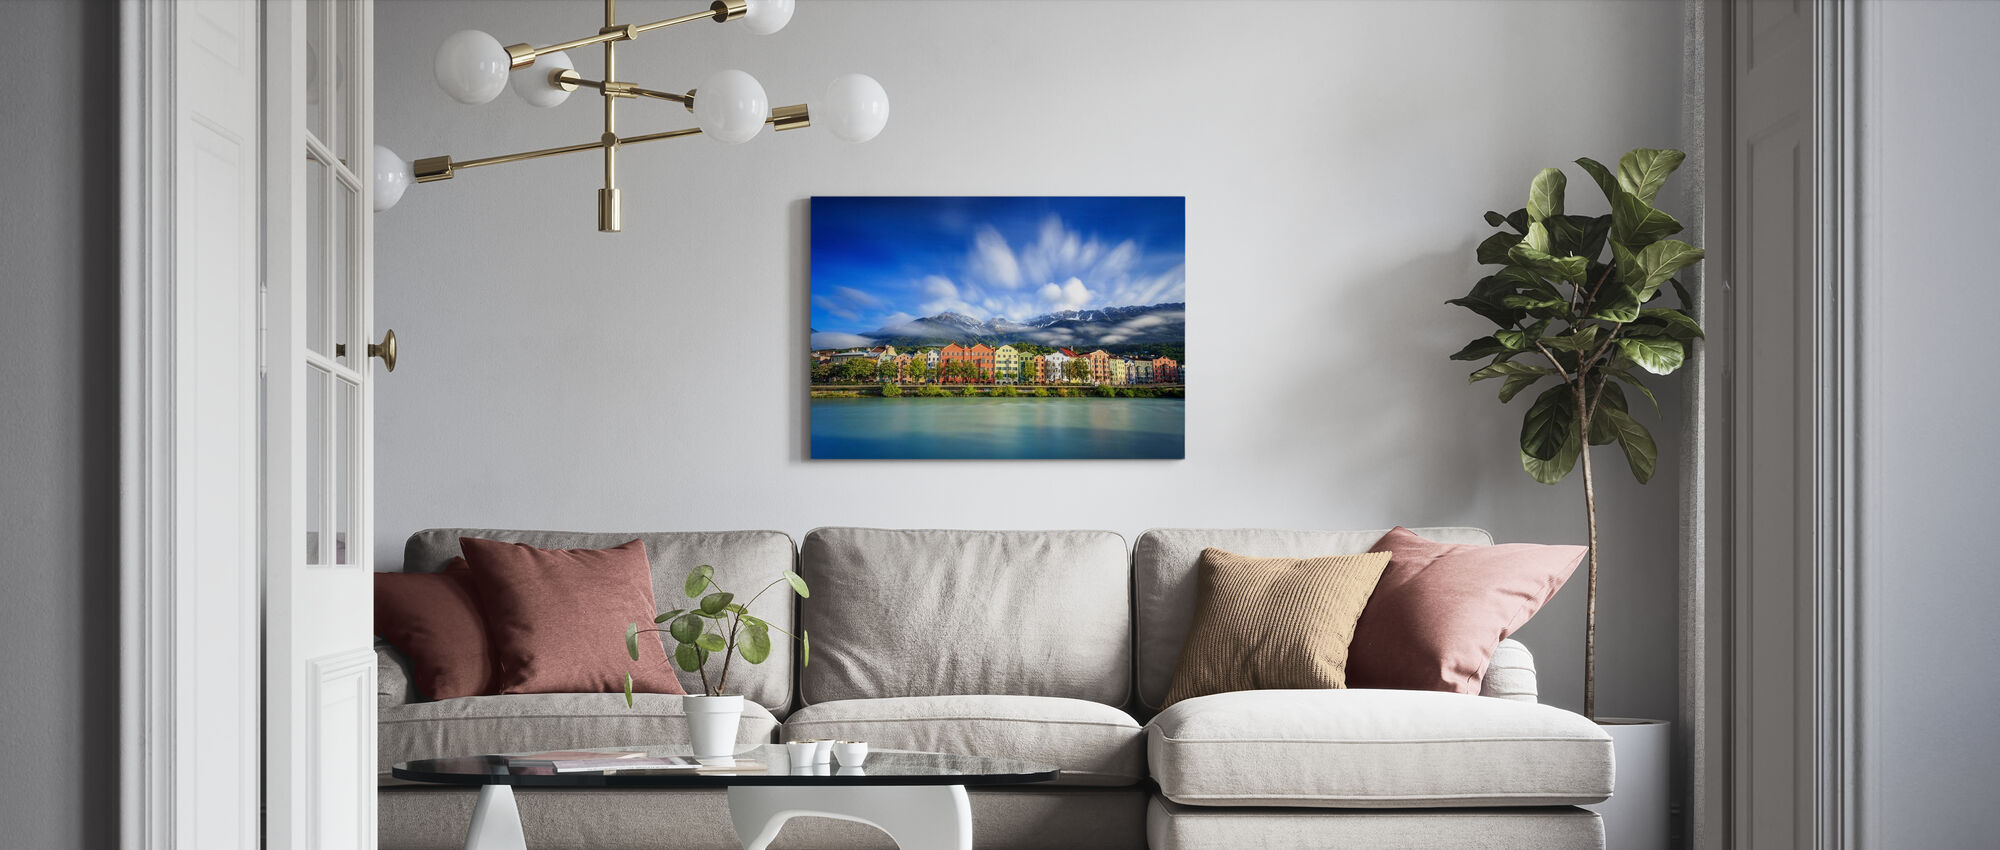 Clouds over Innsbruck - Canvas print - Living Room